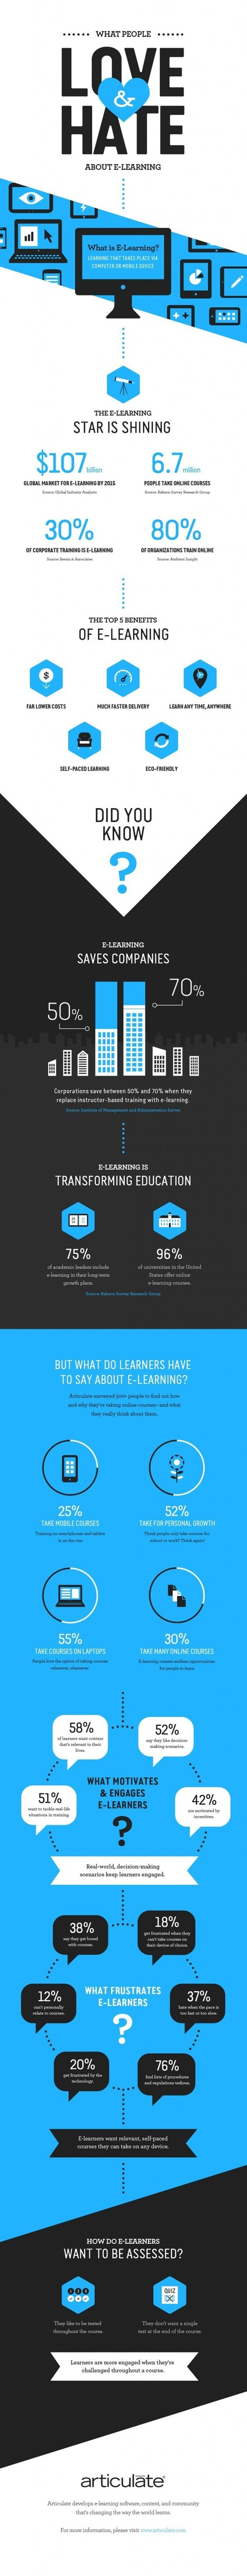 What People Love and Hate about eLearning Infographic | Free Education | Scoop.it